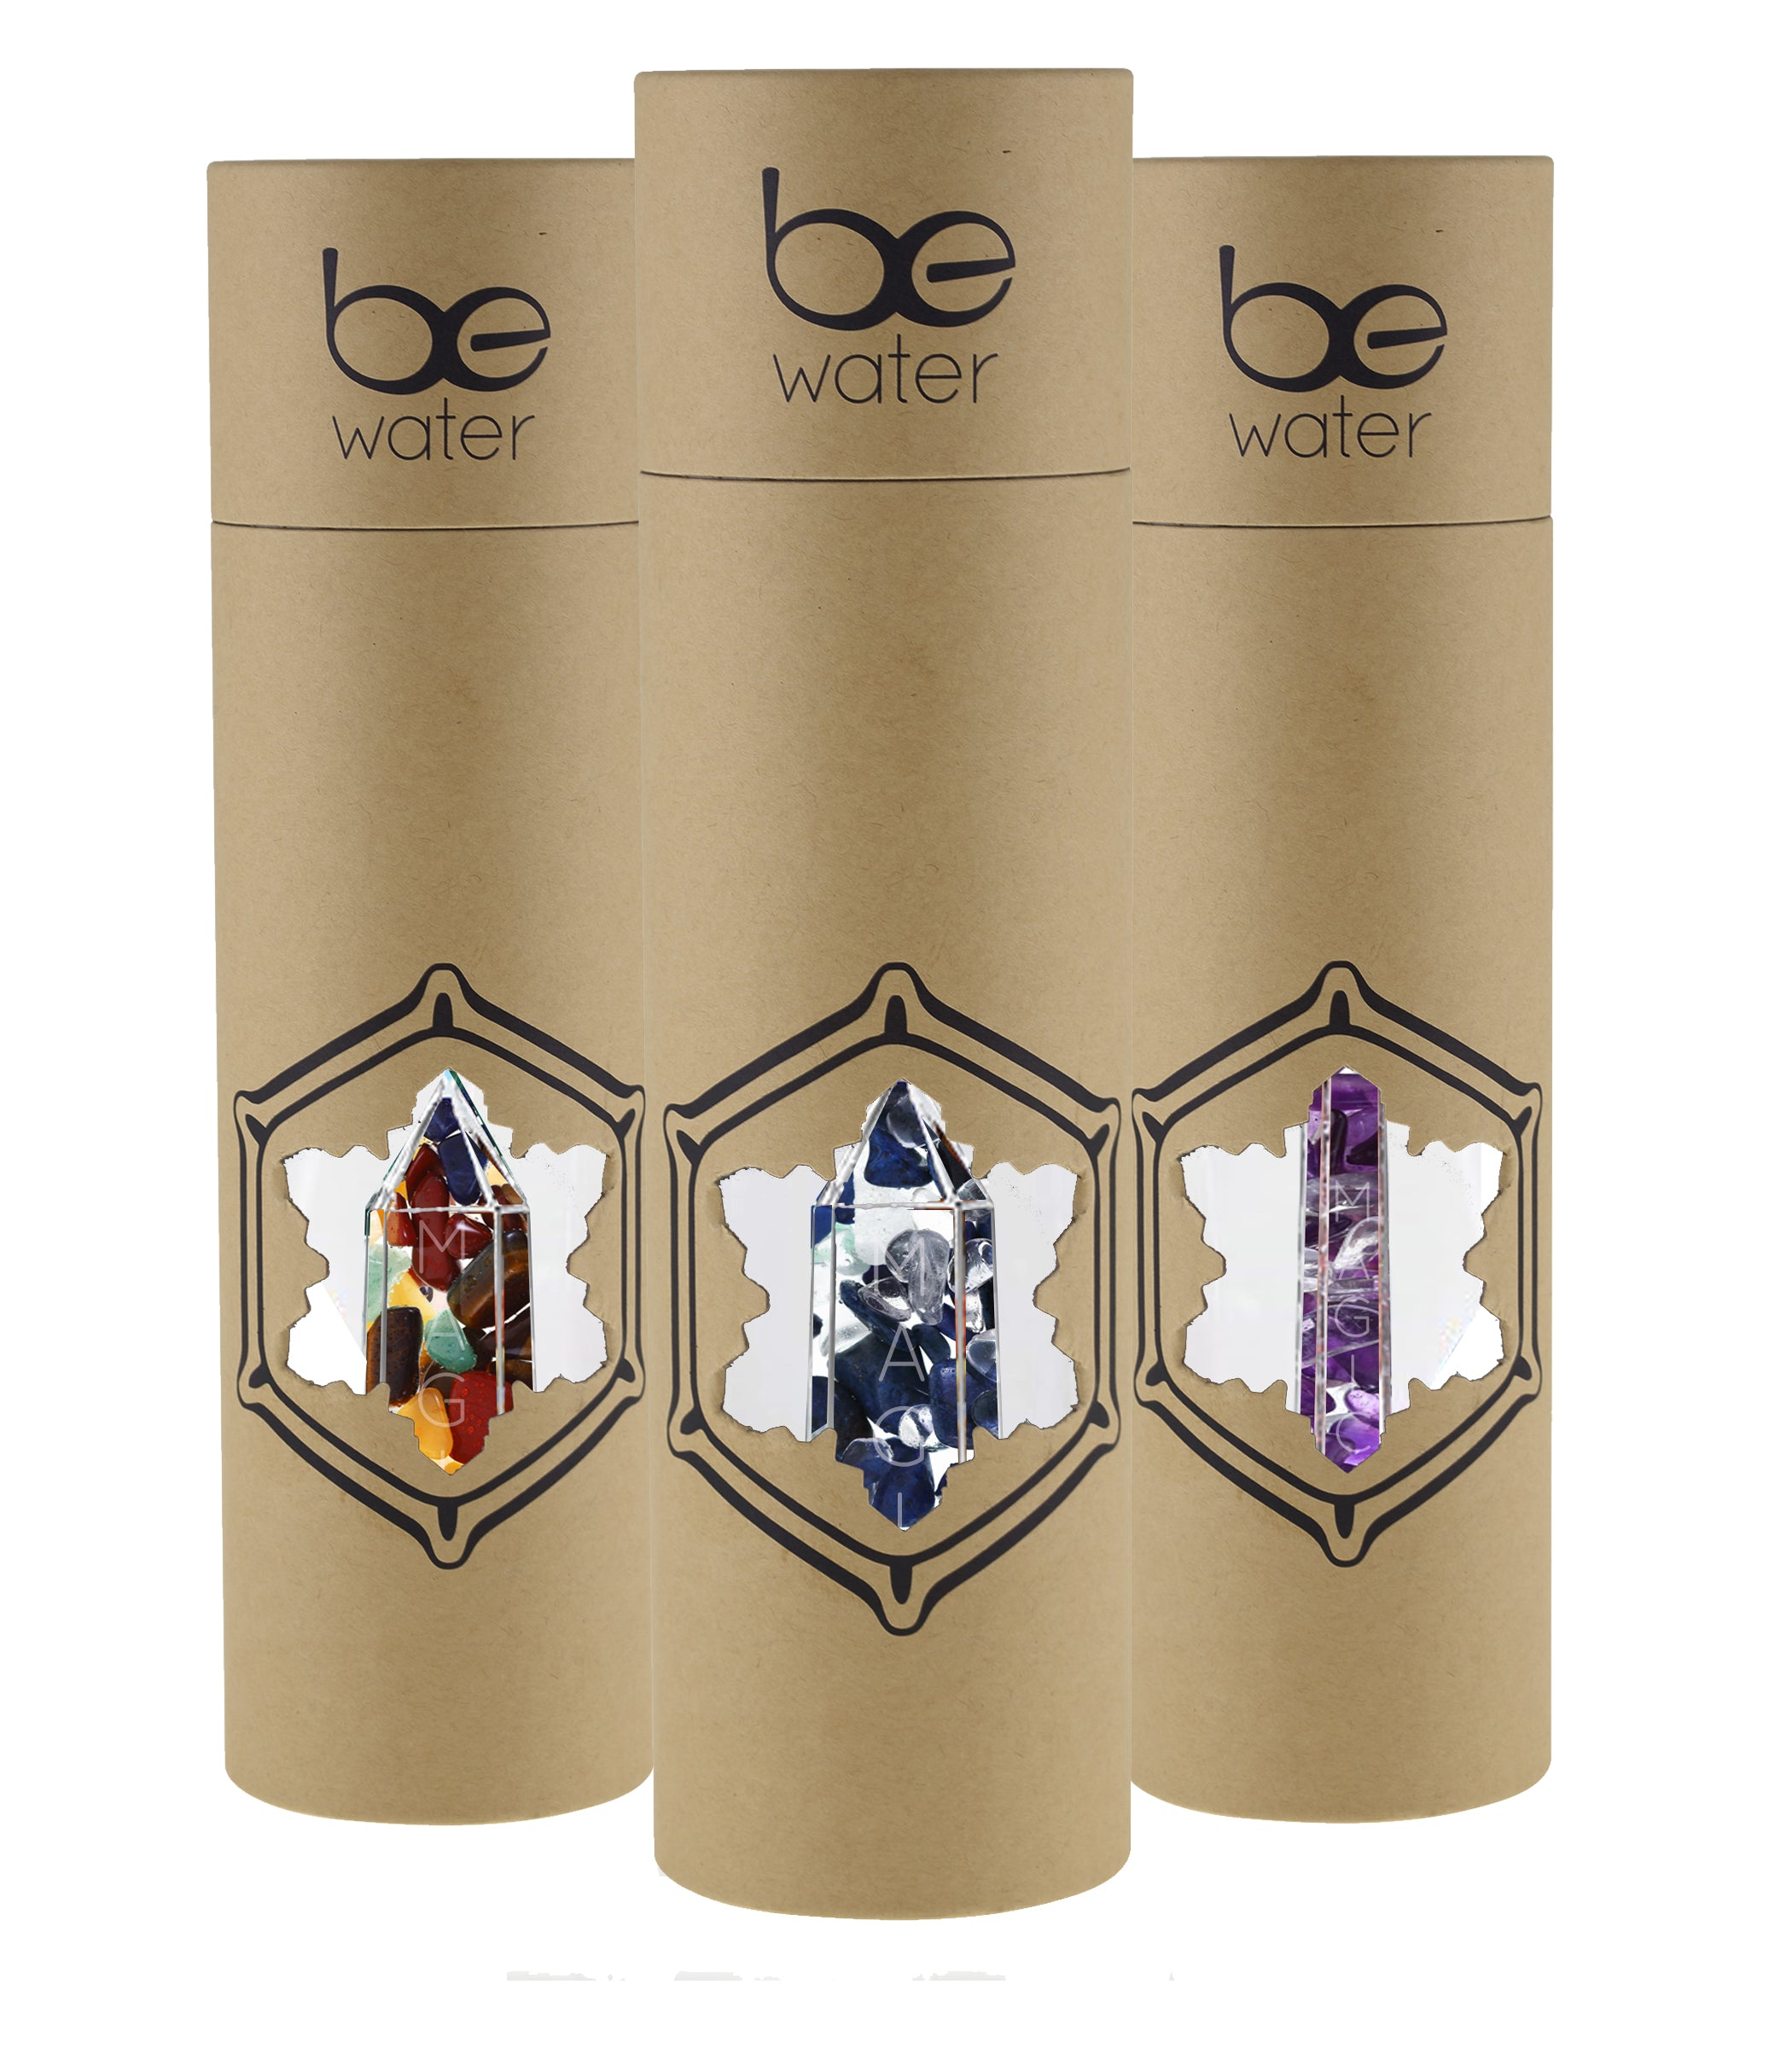 BeMagic Packaging